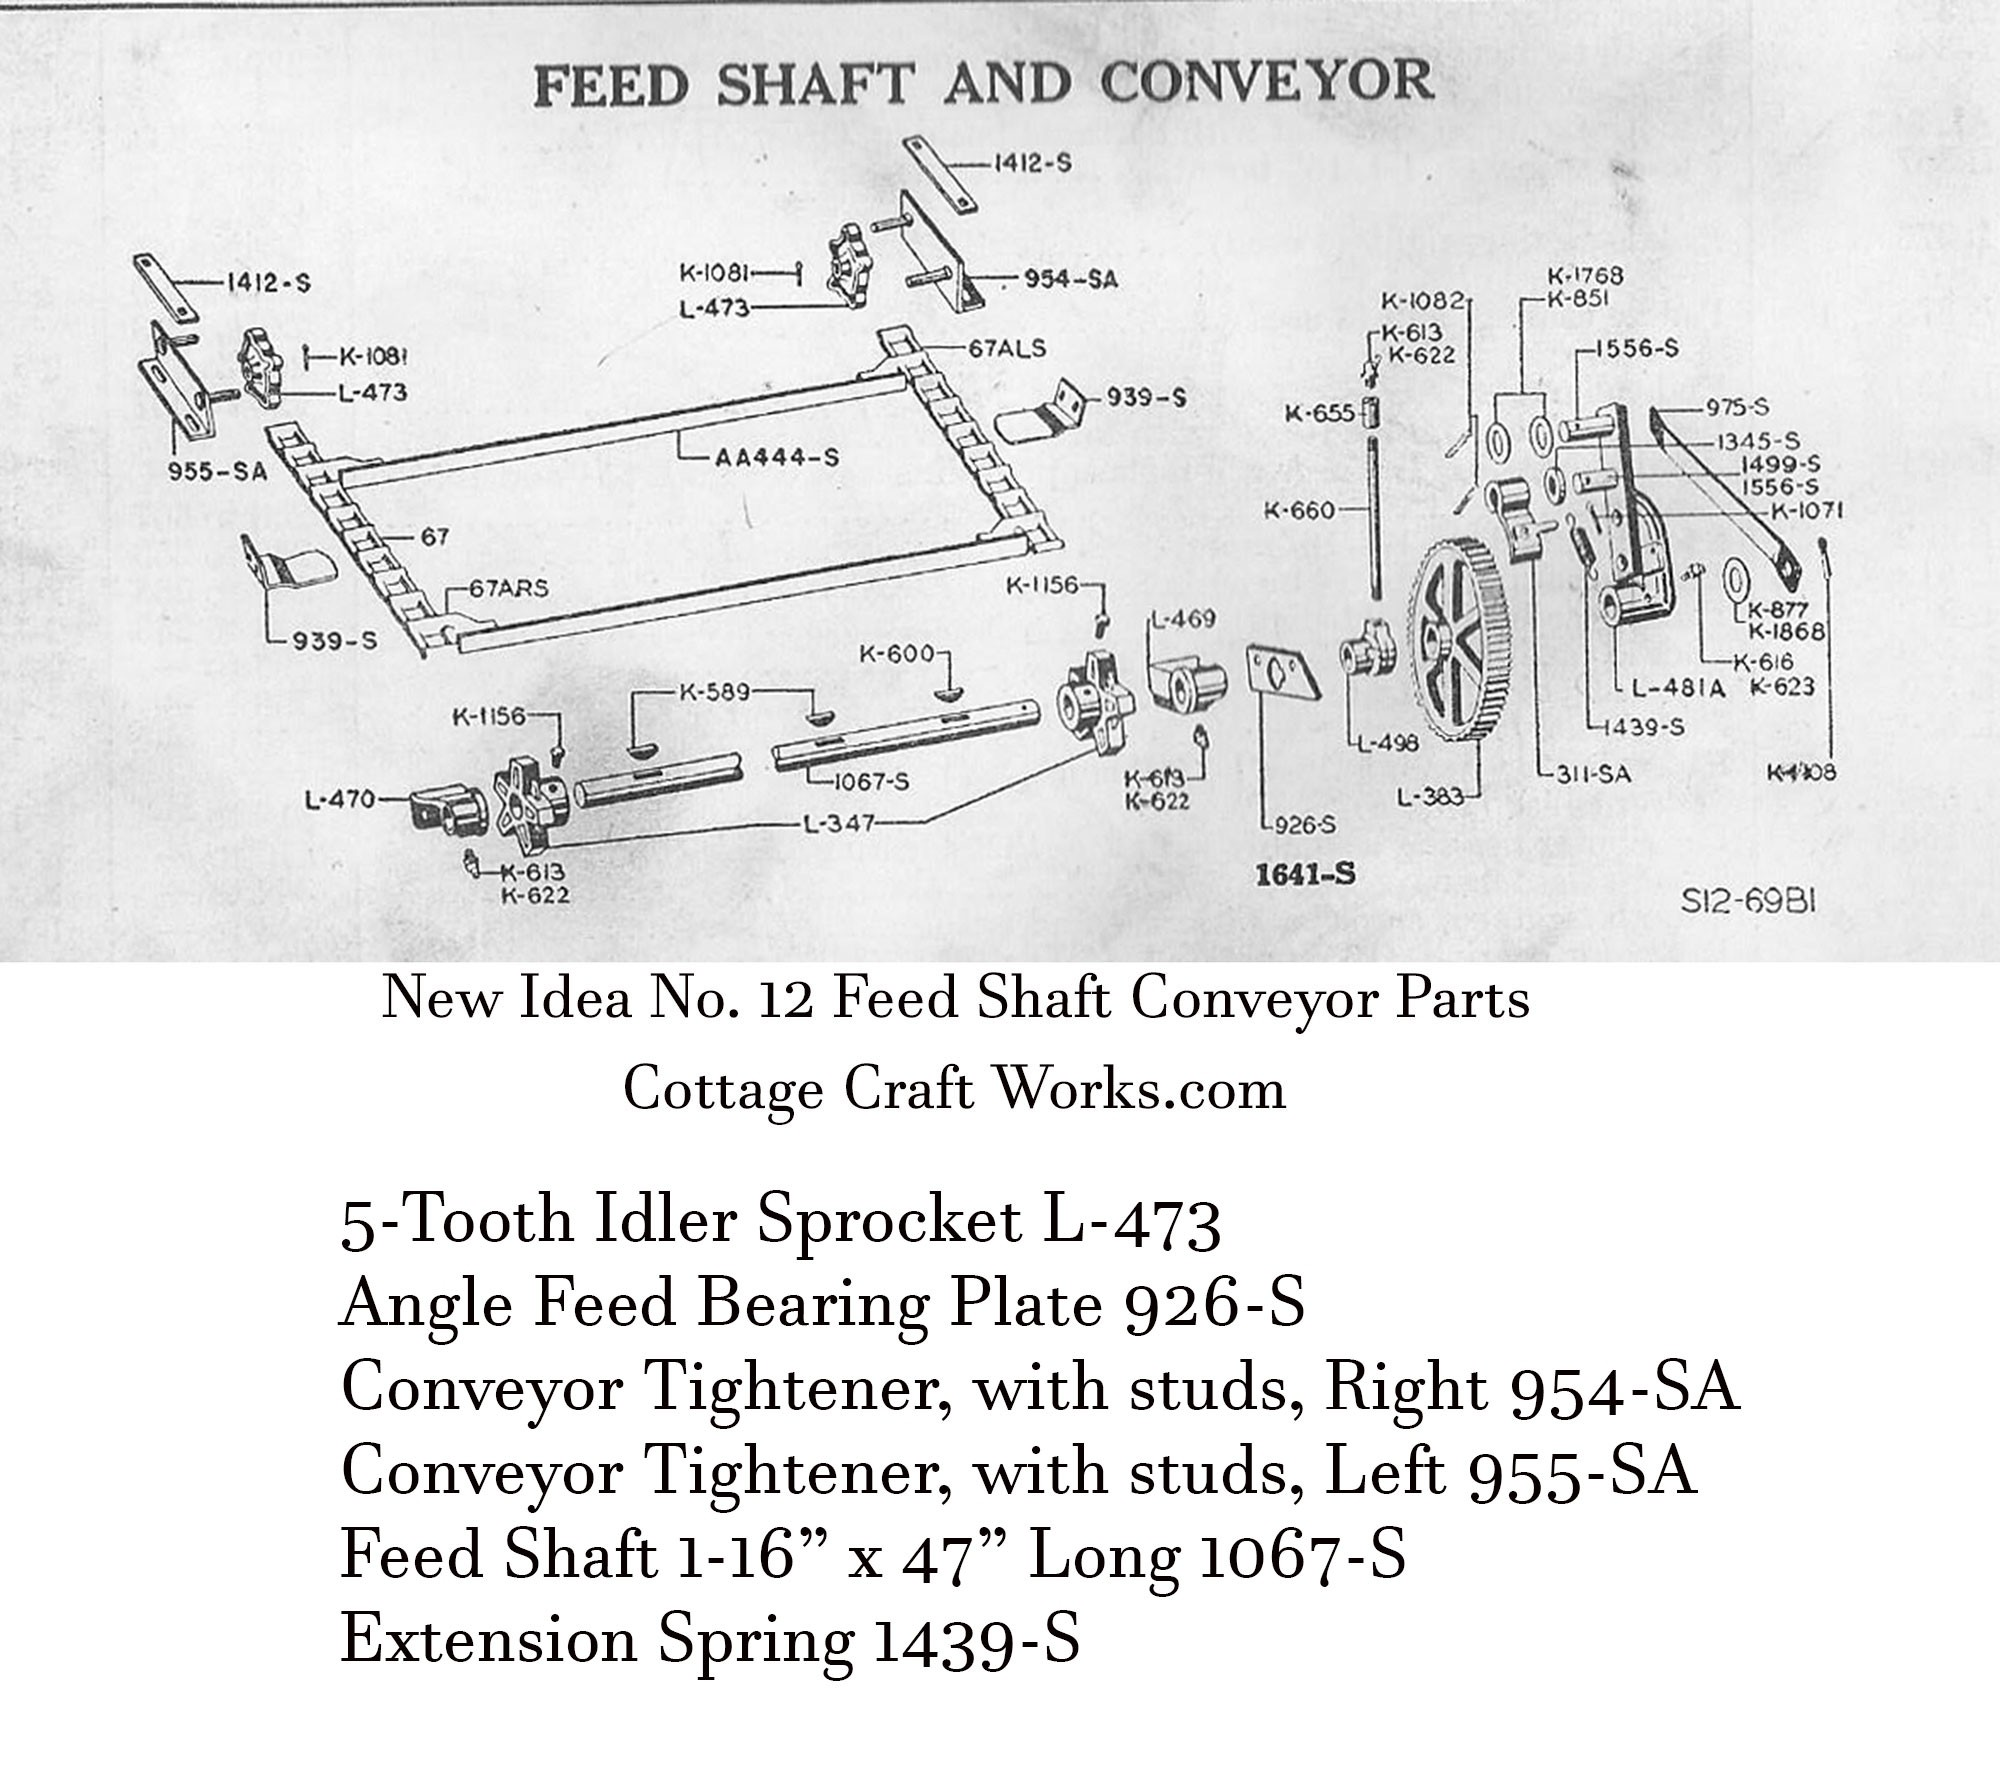 New Idea No. 12 Spreader Feed Shaft & Conveyor Parts